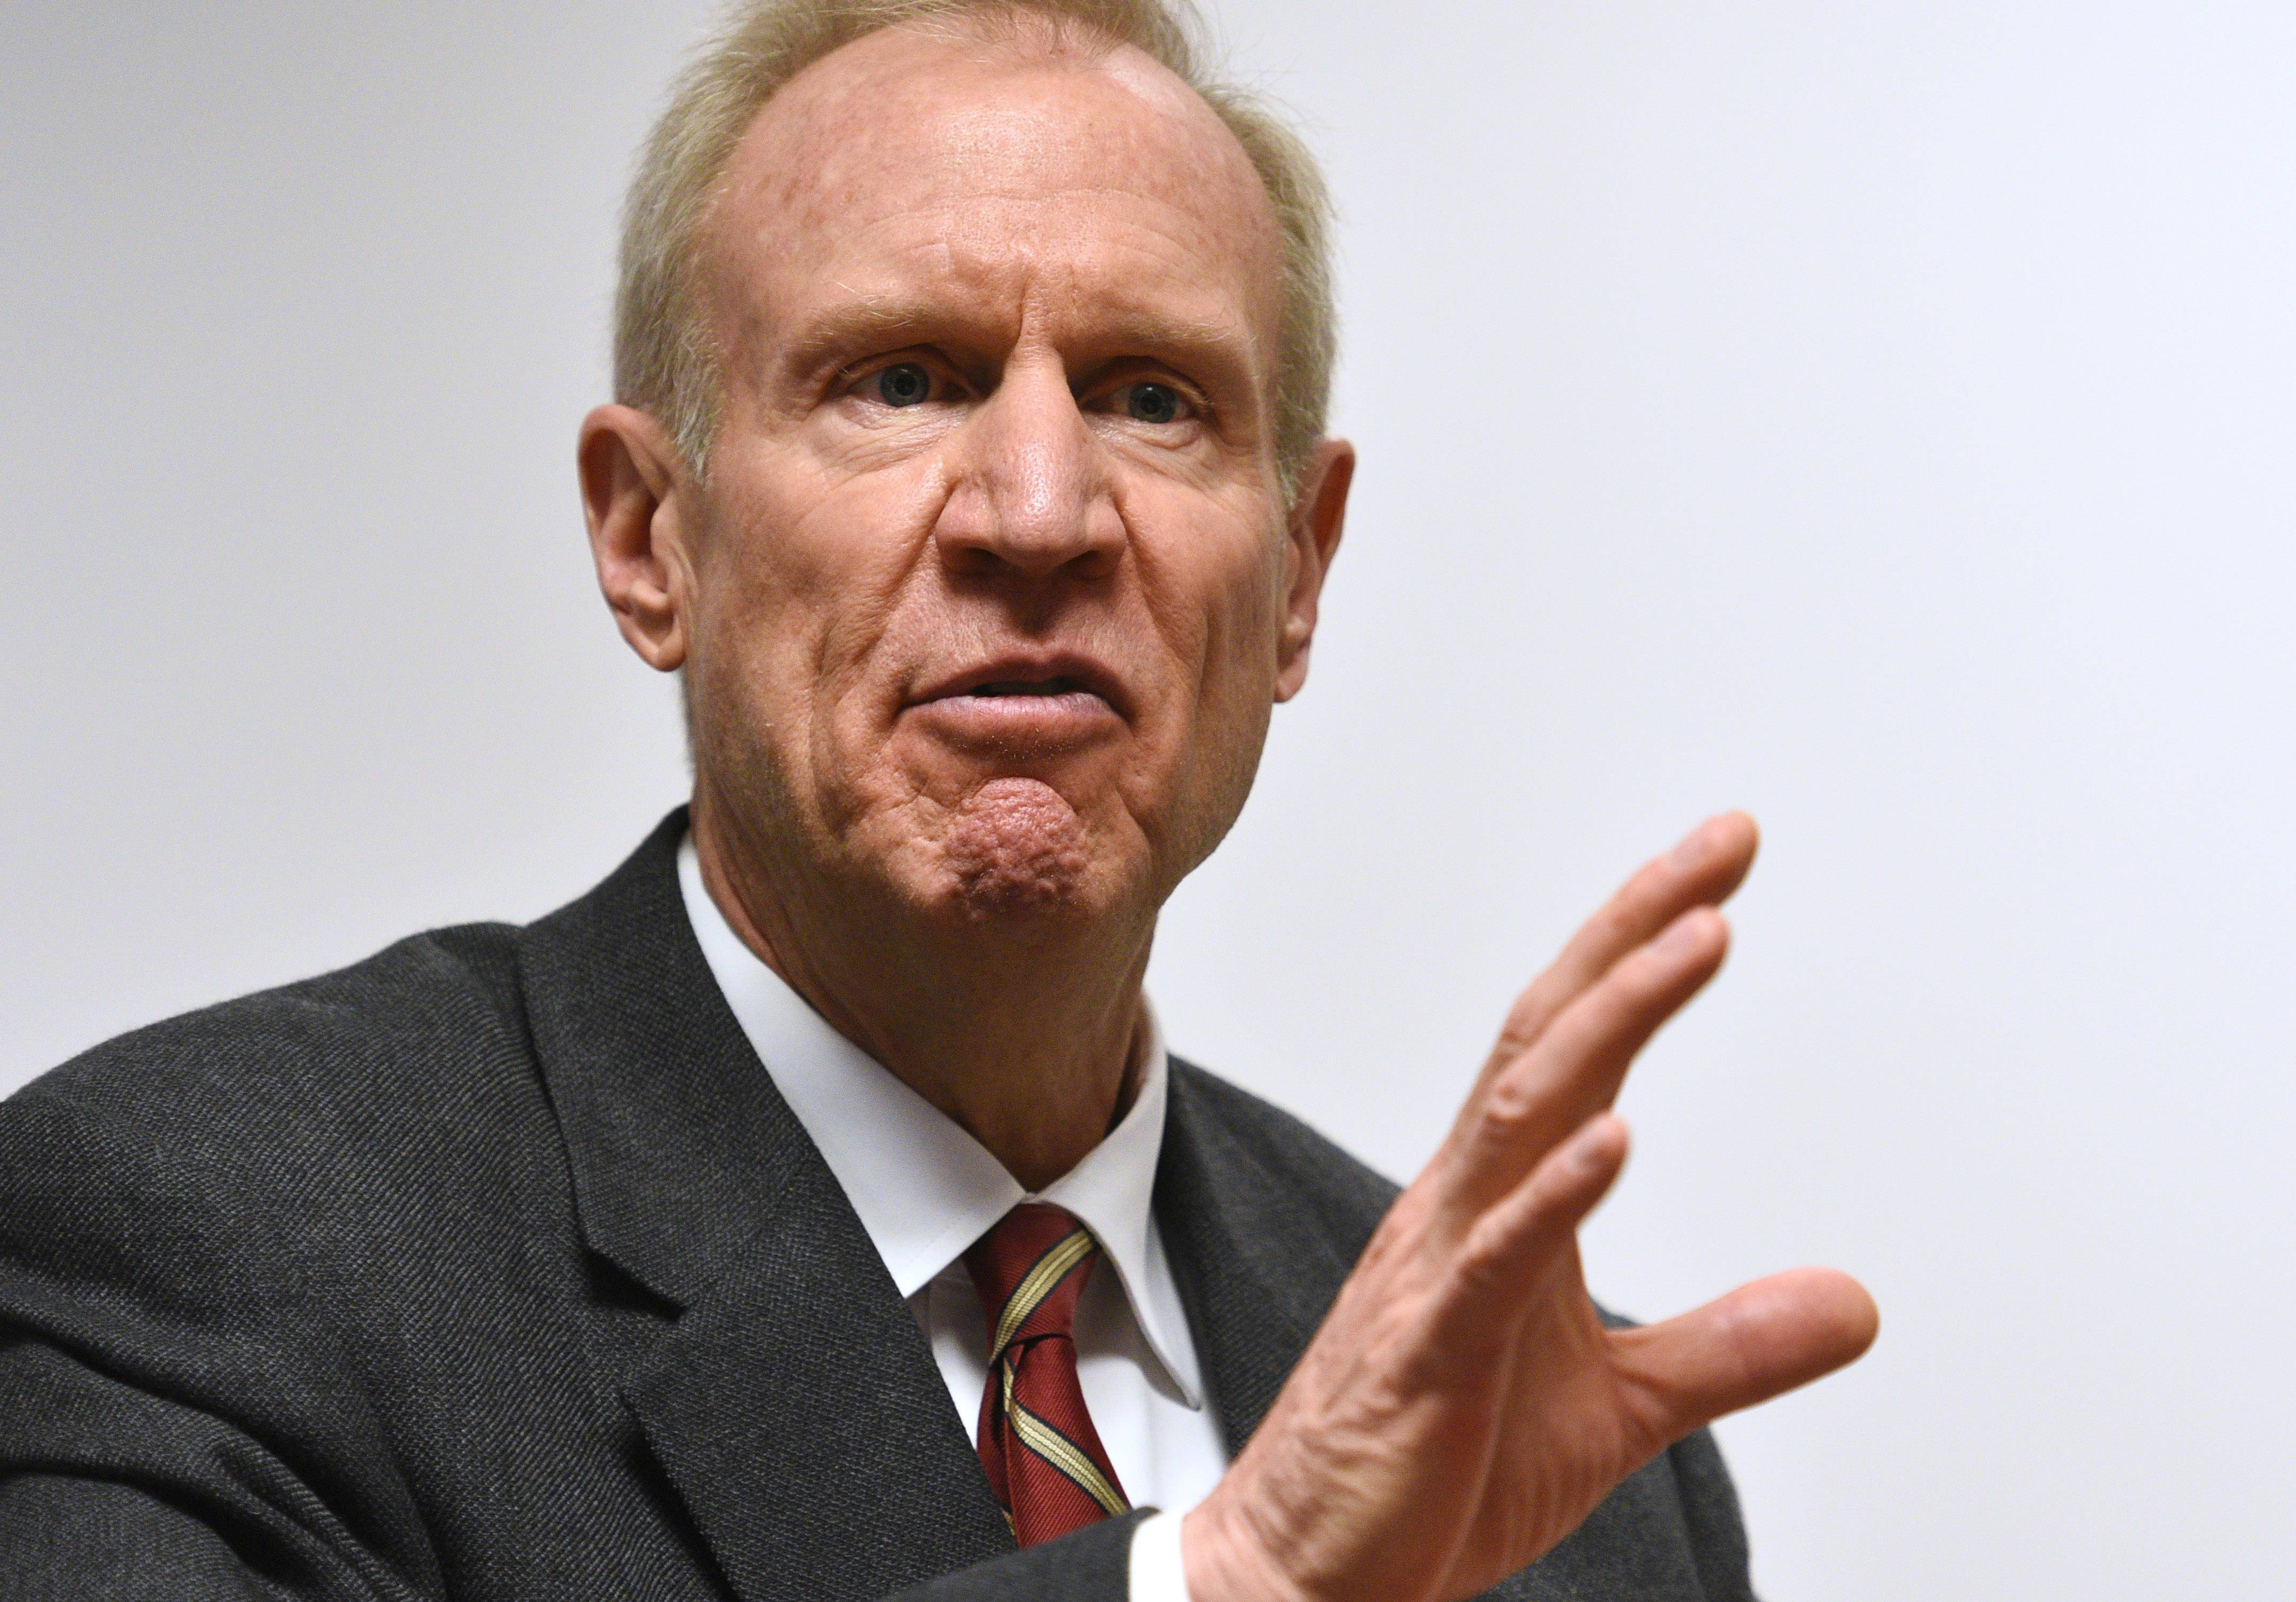 Rauner clinches GOP Cook County party endorsements